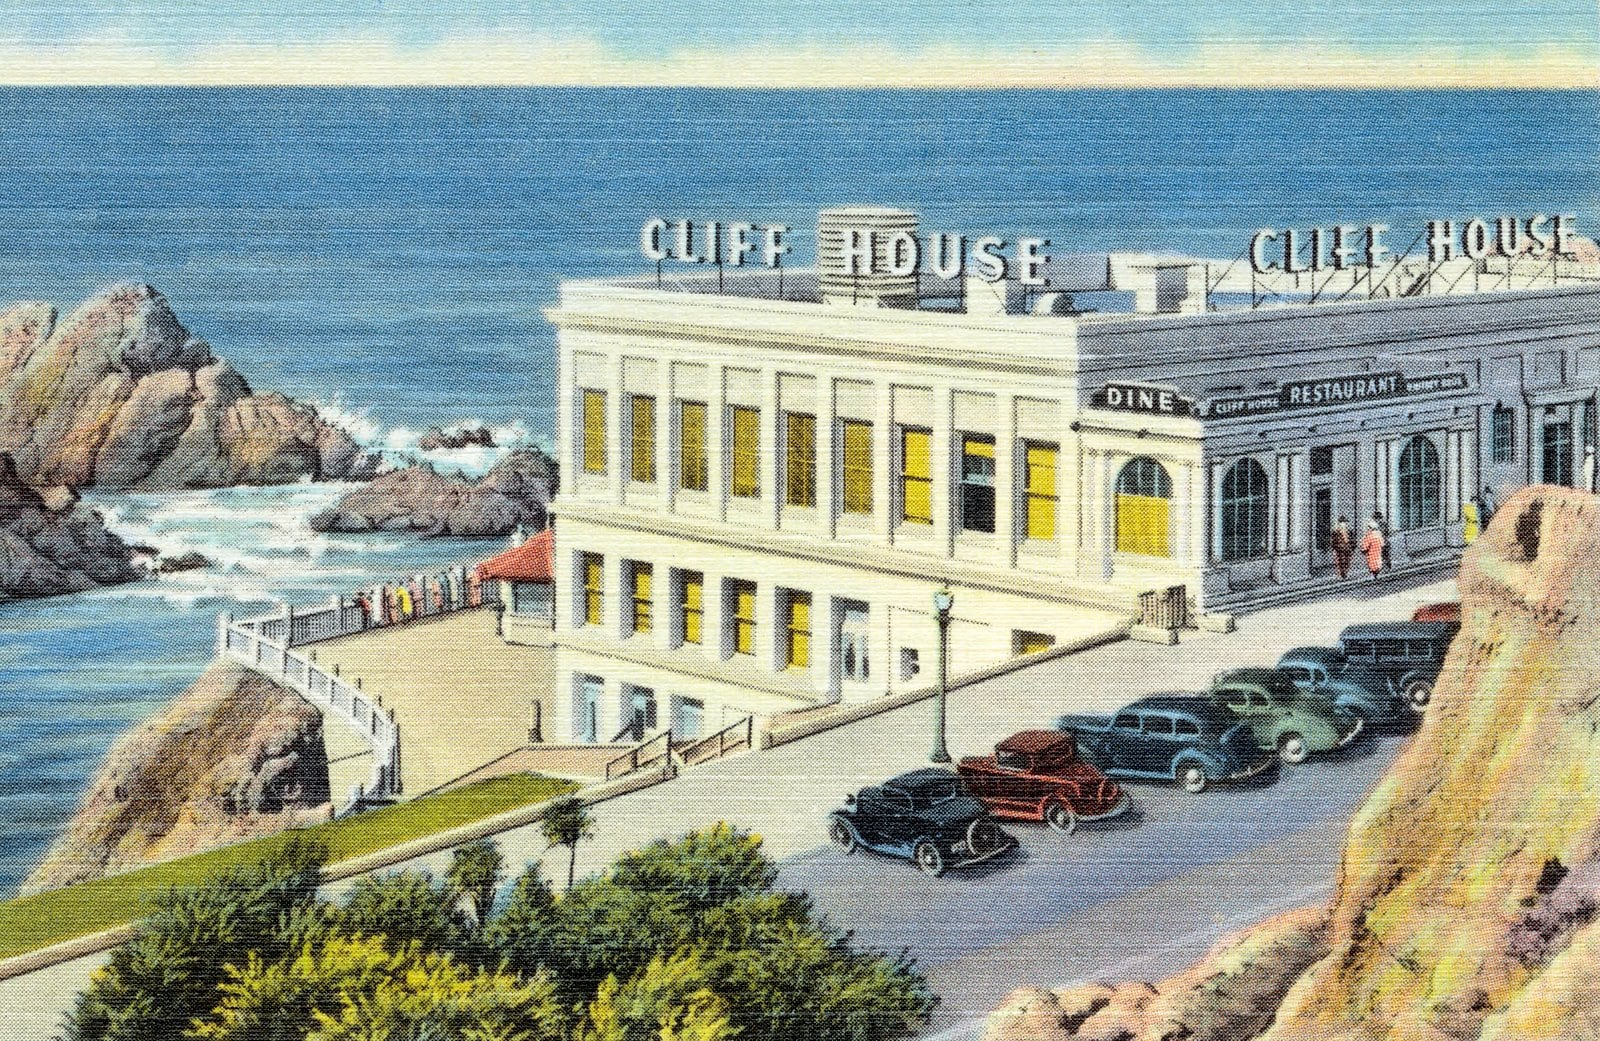 The Cliff House (1930s-1940s)